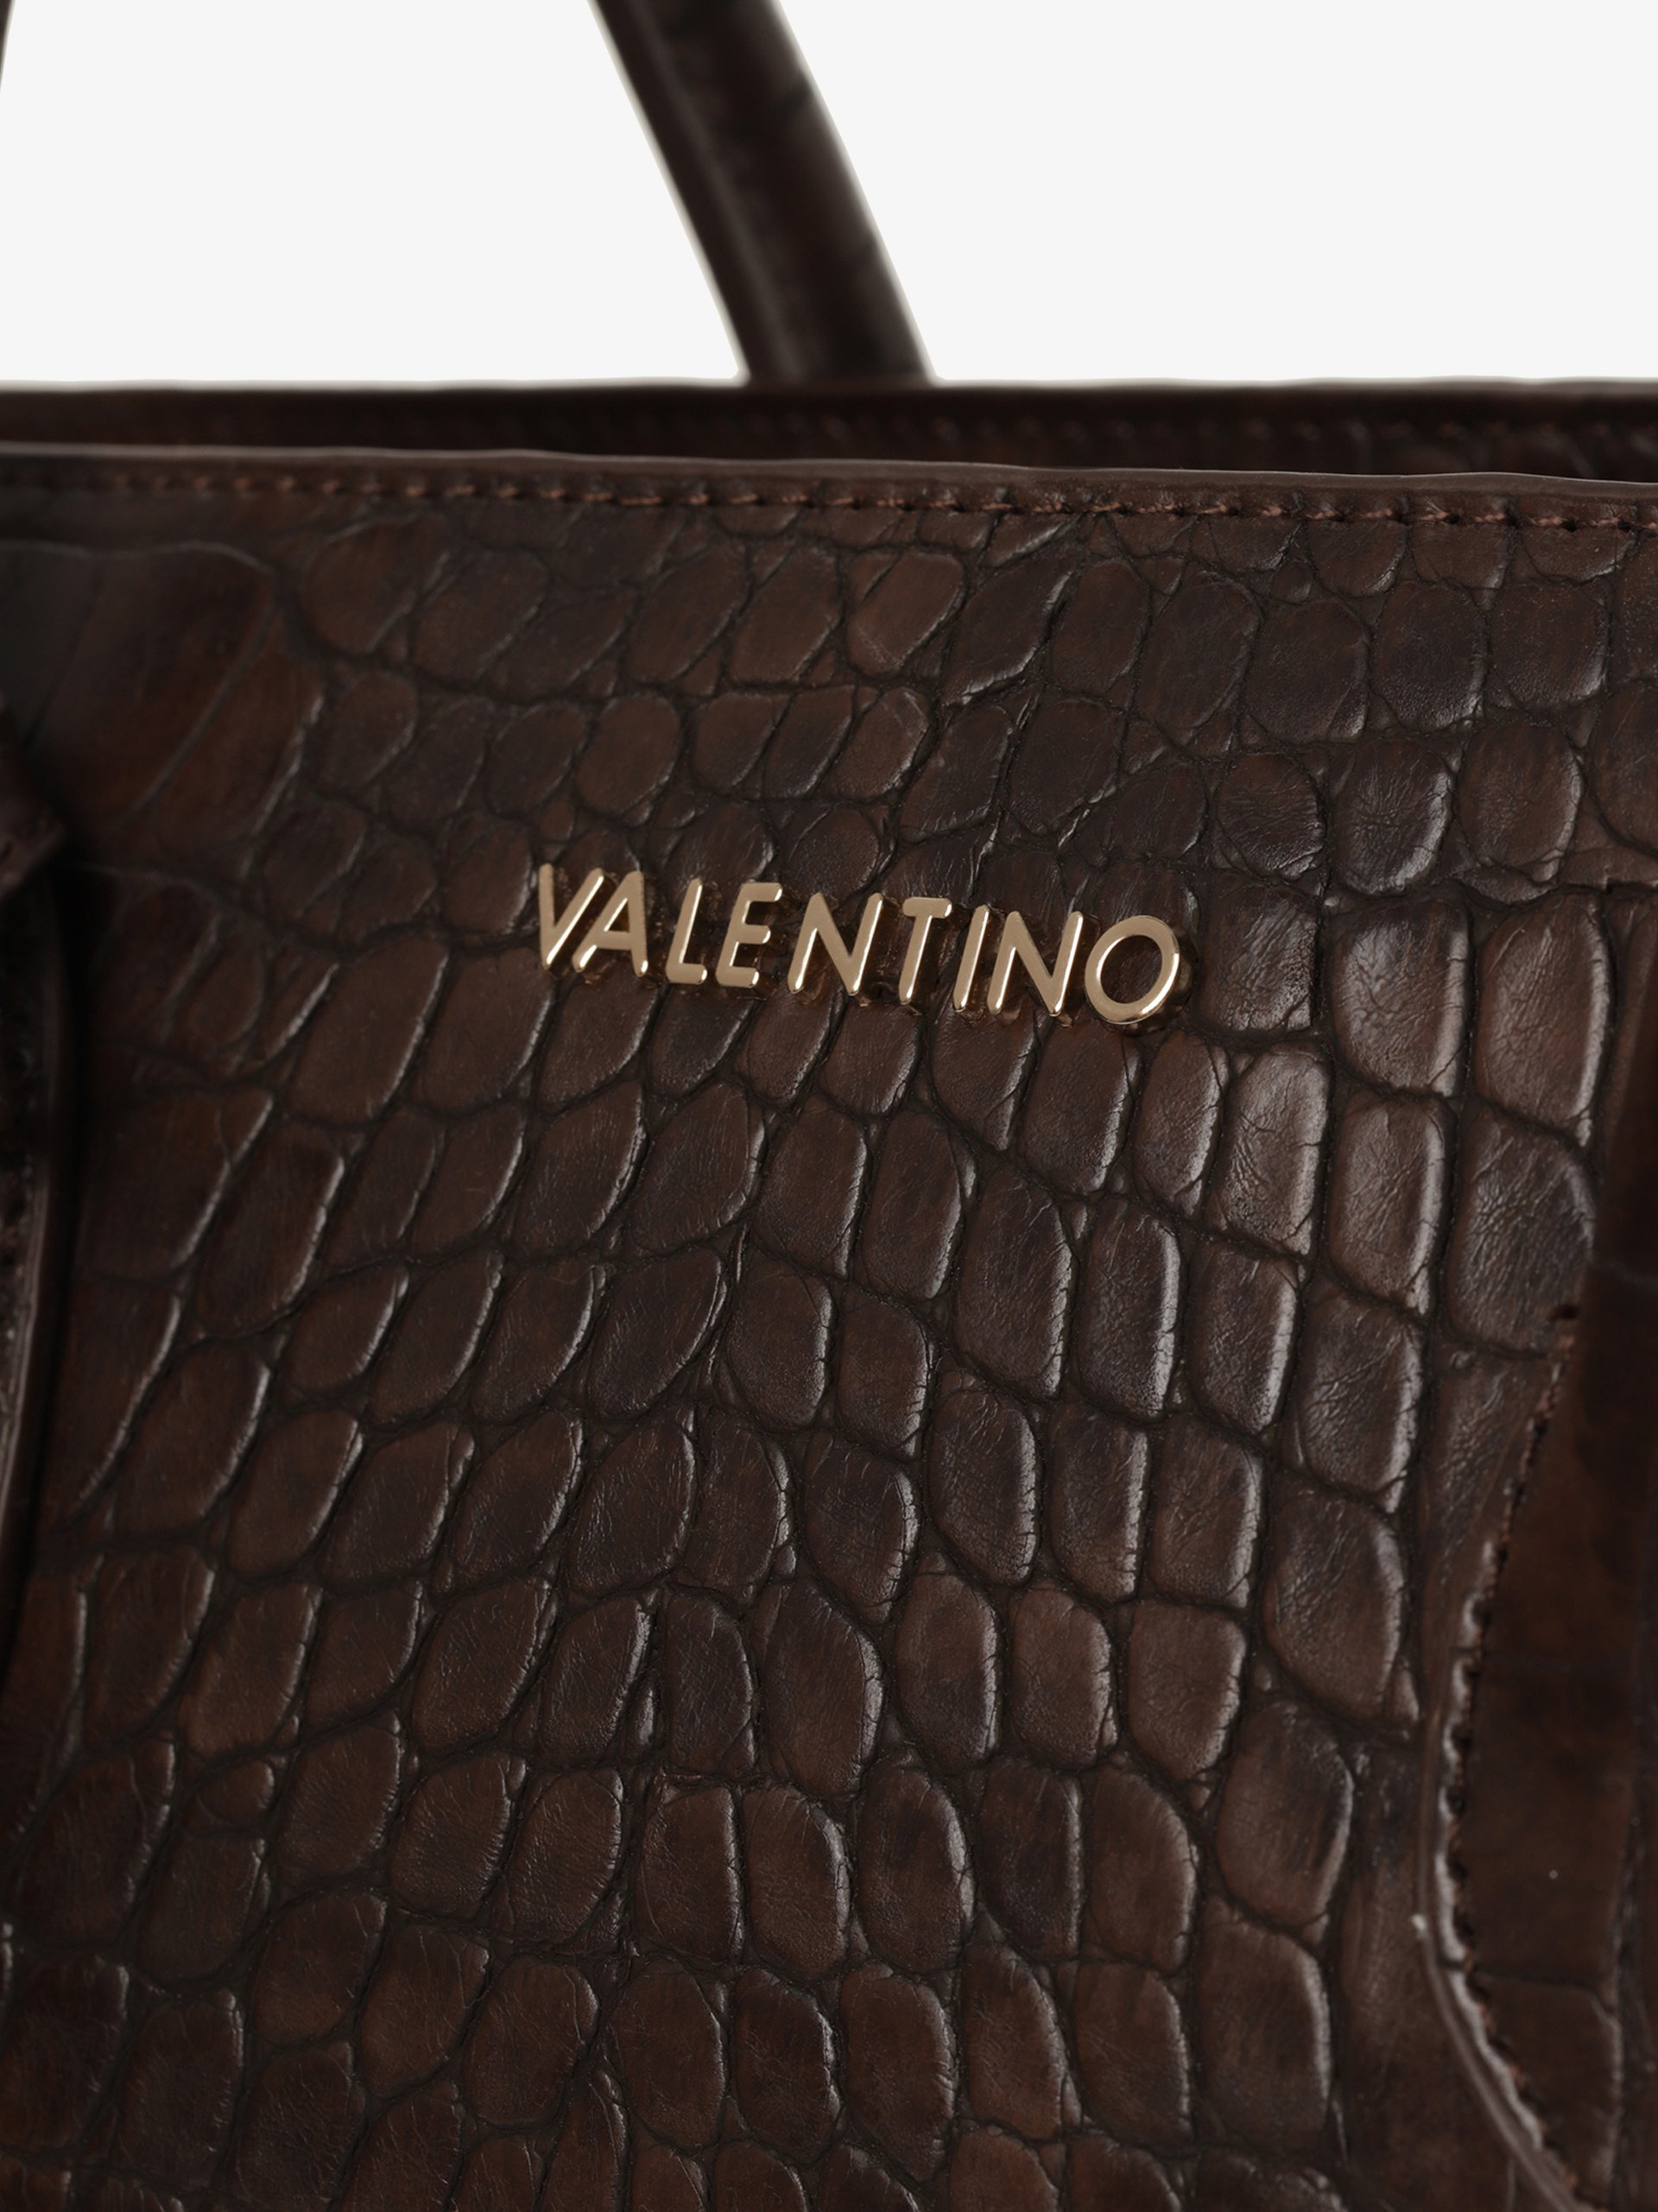 Valentino Damska torba shopper – Winter Memento